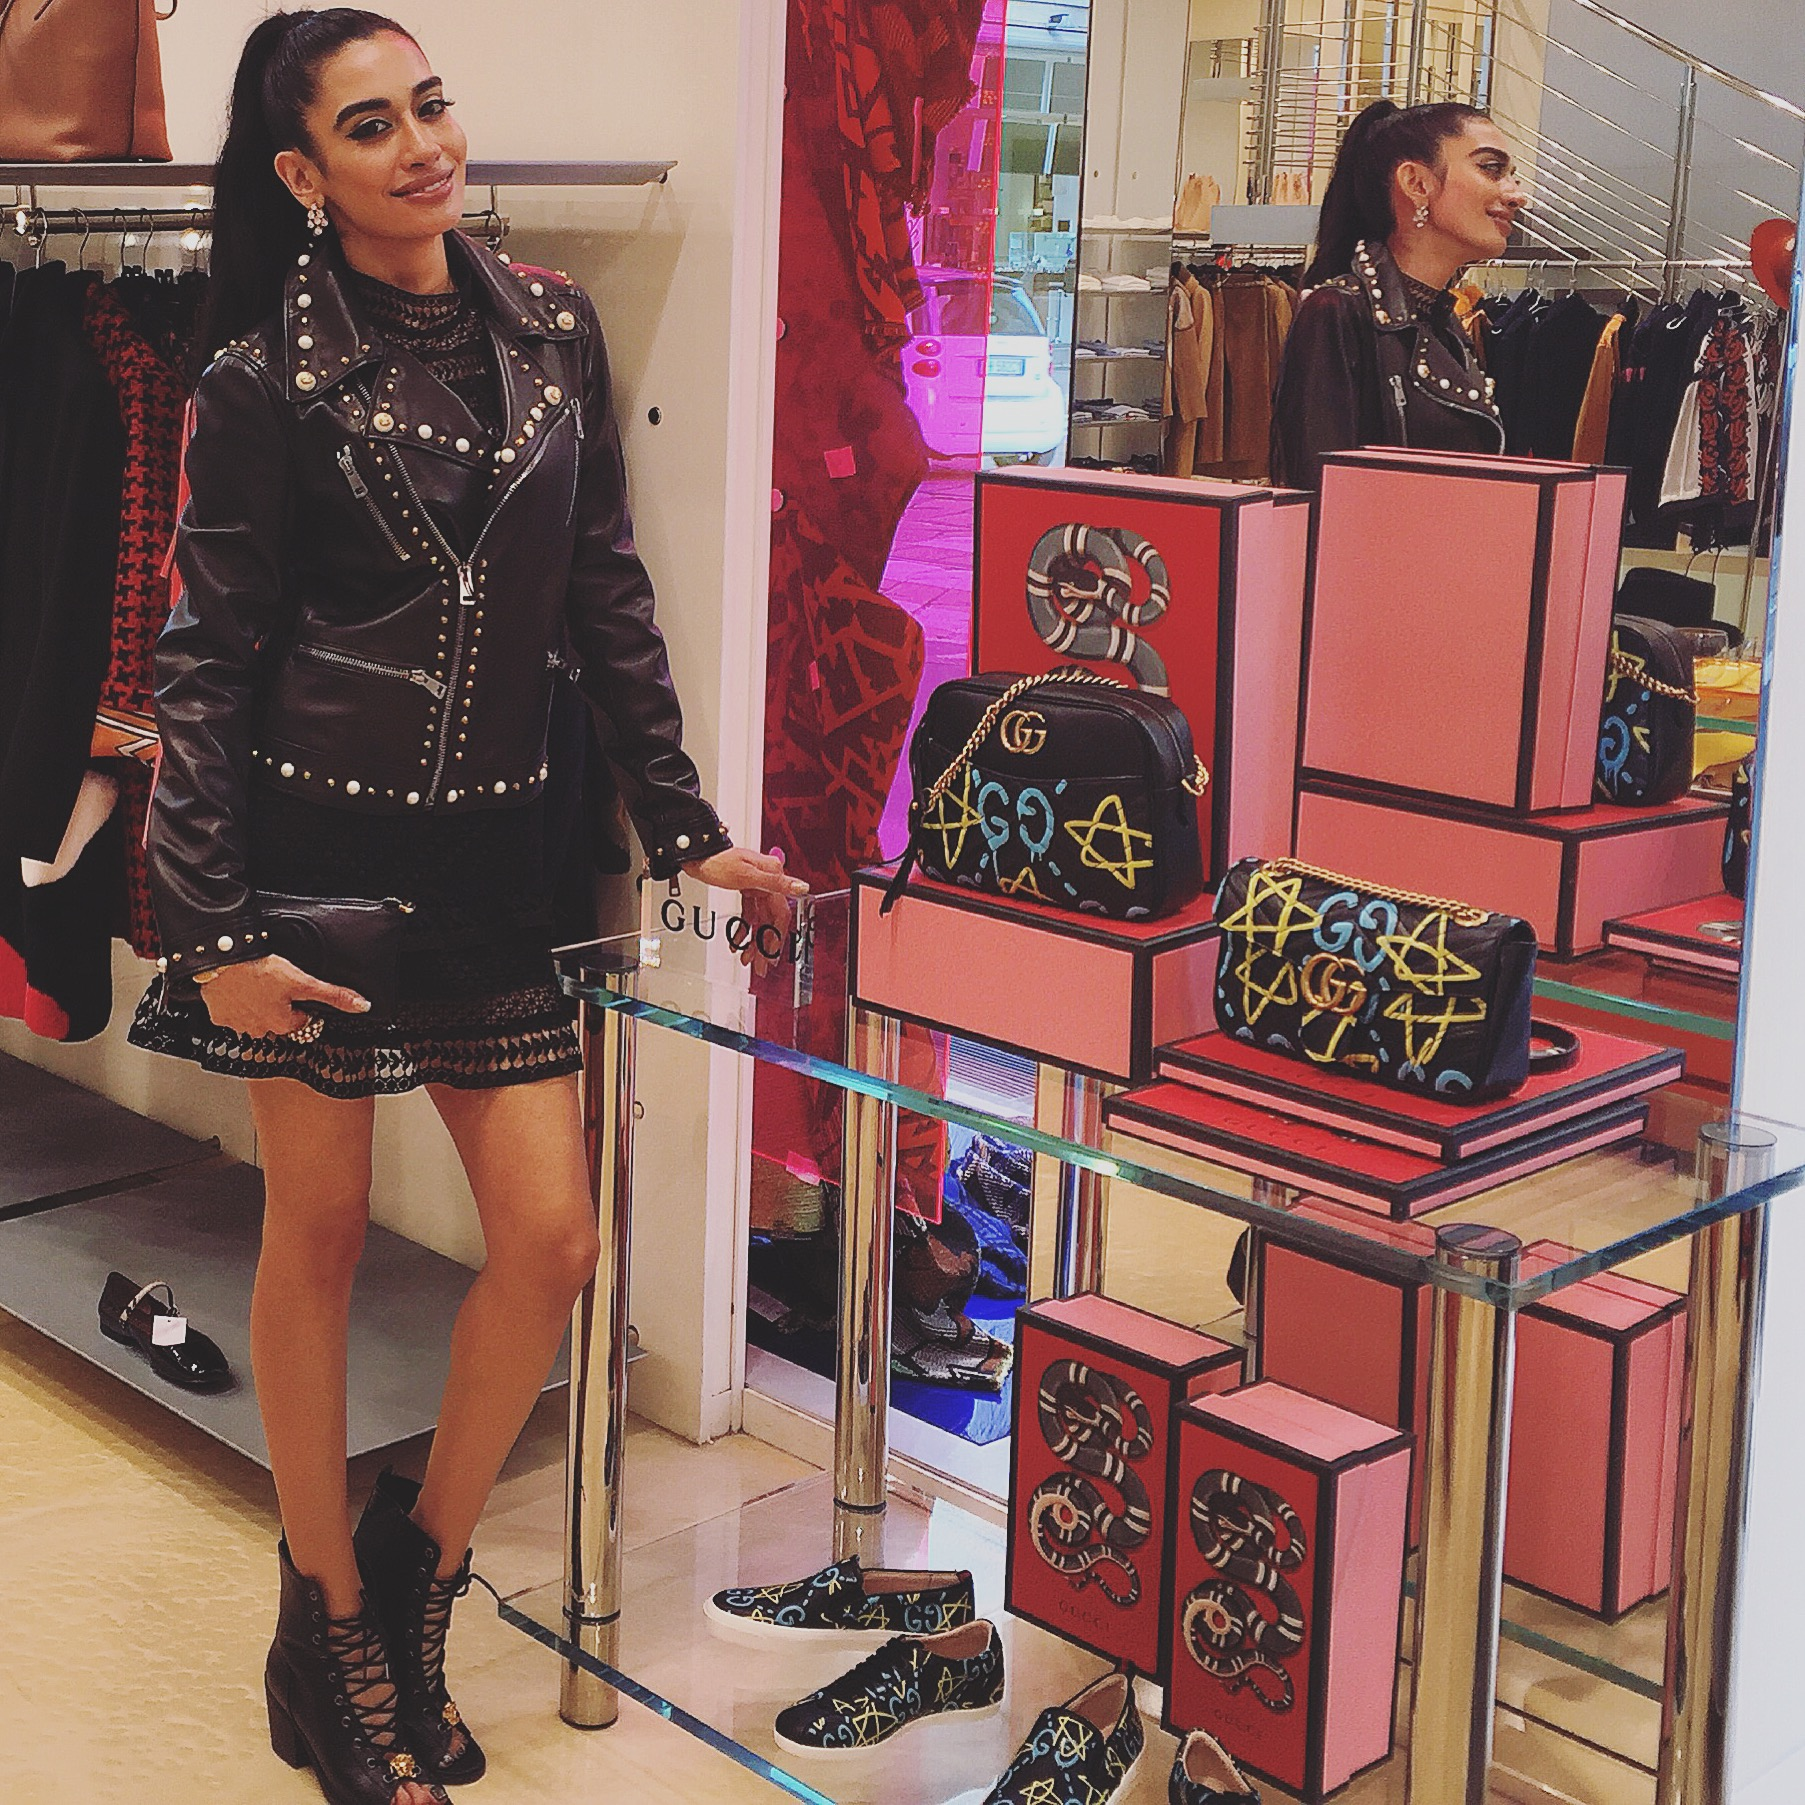 Farah Zulaikha in brand-new limited edition Gucci GG studded leather jacket and bag posing with the new Gucci collection dressed exclusively by BIFFI for a very special in-store appearance today! CIAO BIFFI, GRAZIE MILLE! 🌹